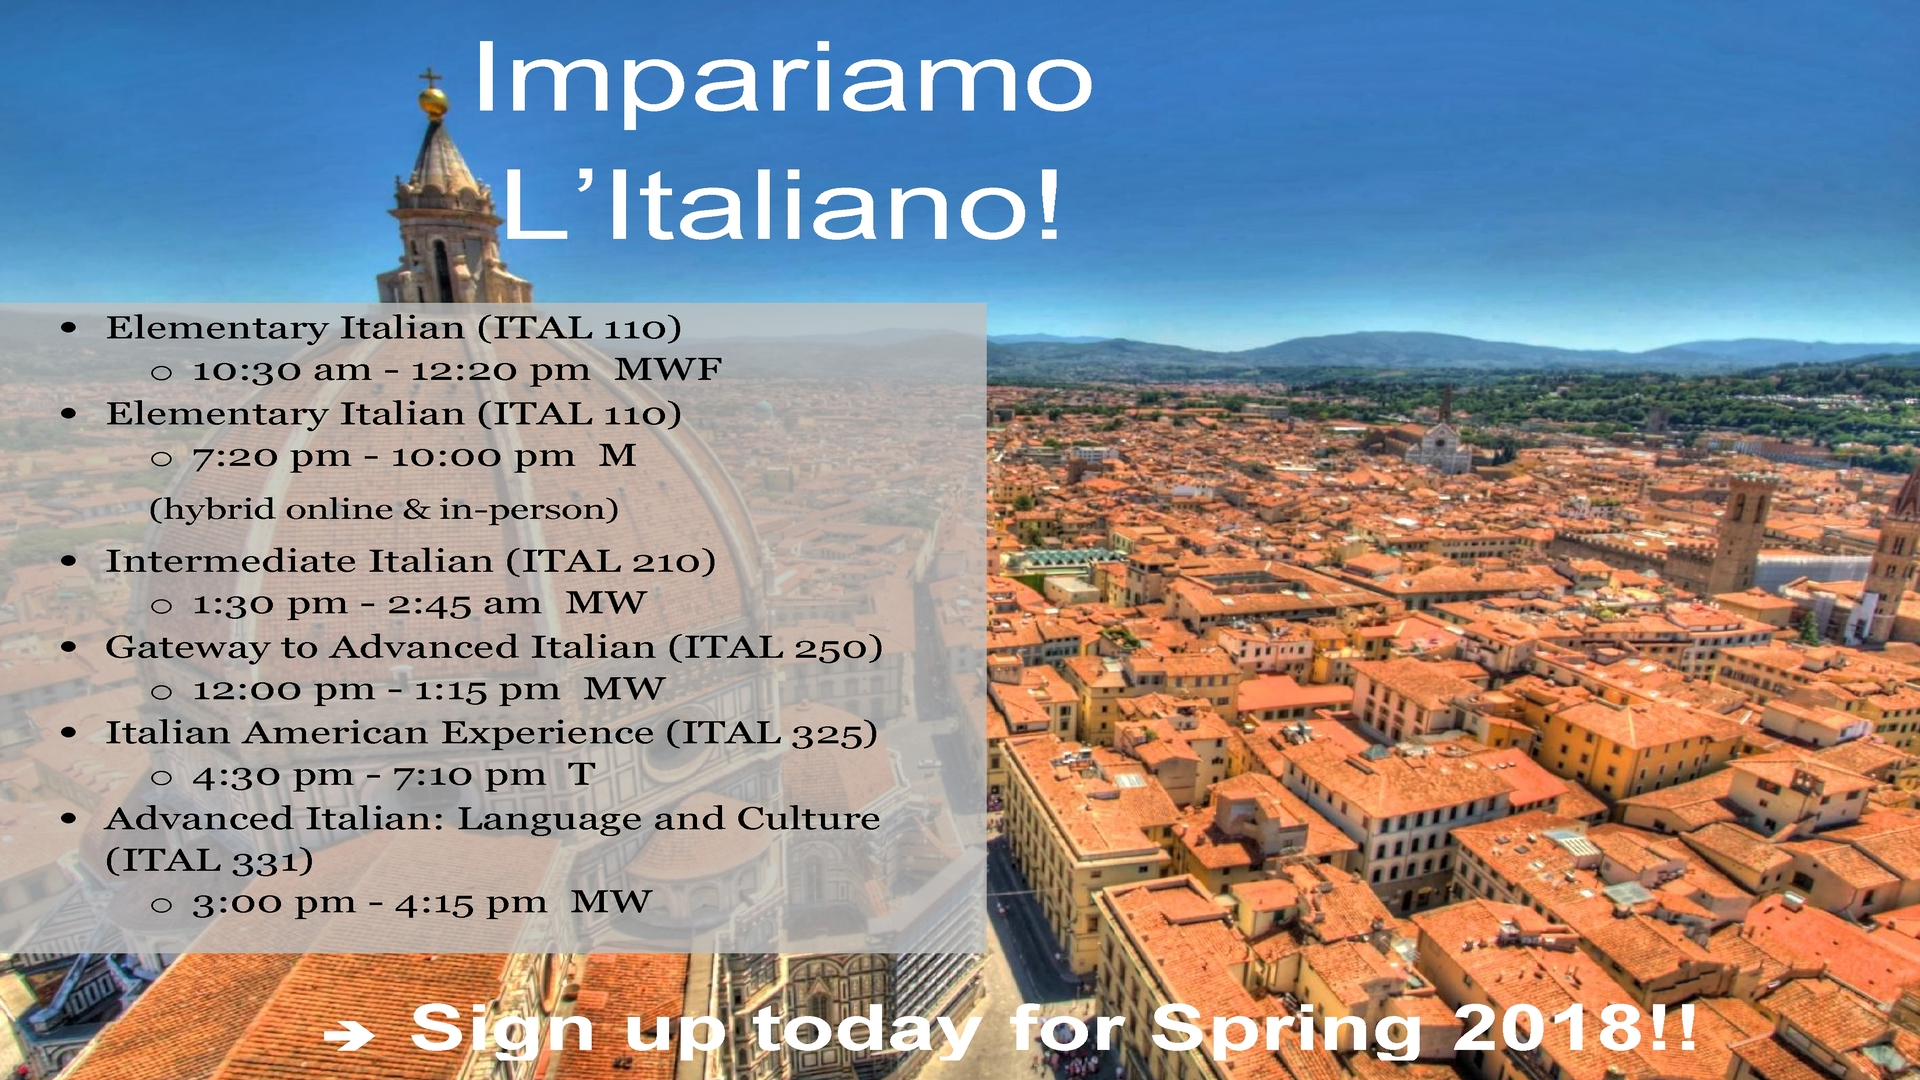 Information regarding Italian courses Spring 2018 is as follows Create Your Own Tags: is #studyitalian #studiarelitaliano and Start date (when you would like your content to be posted) is November 10 2017 and End Date  (when you would like your content to be removed from the screens) is December 18 2017 and File is Browse and Group Name is Department of Modern and Classical Languages and File Name is ItalianSP18_comp.jpg and Name of Ad/Event is Italian courses Spring 2018 and Email is kolson4@gmu.edu and Panel for your ad to be displayed is Main and Affiliation is Mason Department and Name is Professor Kristina Olson and